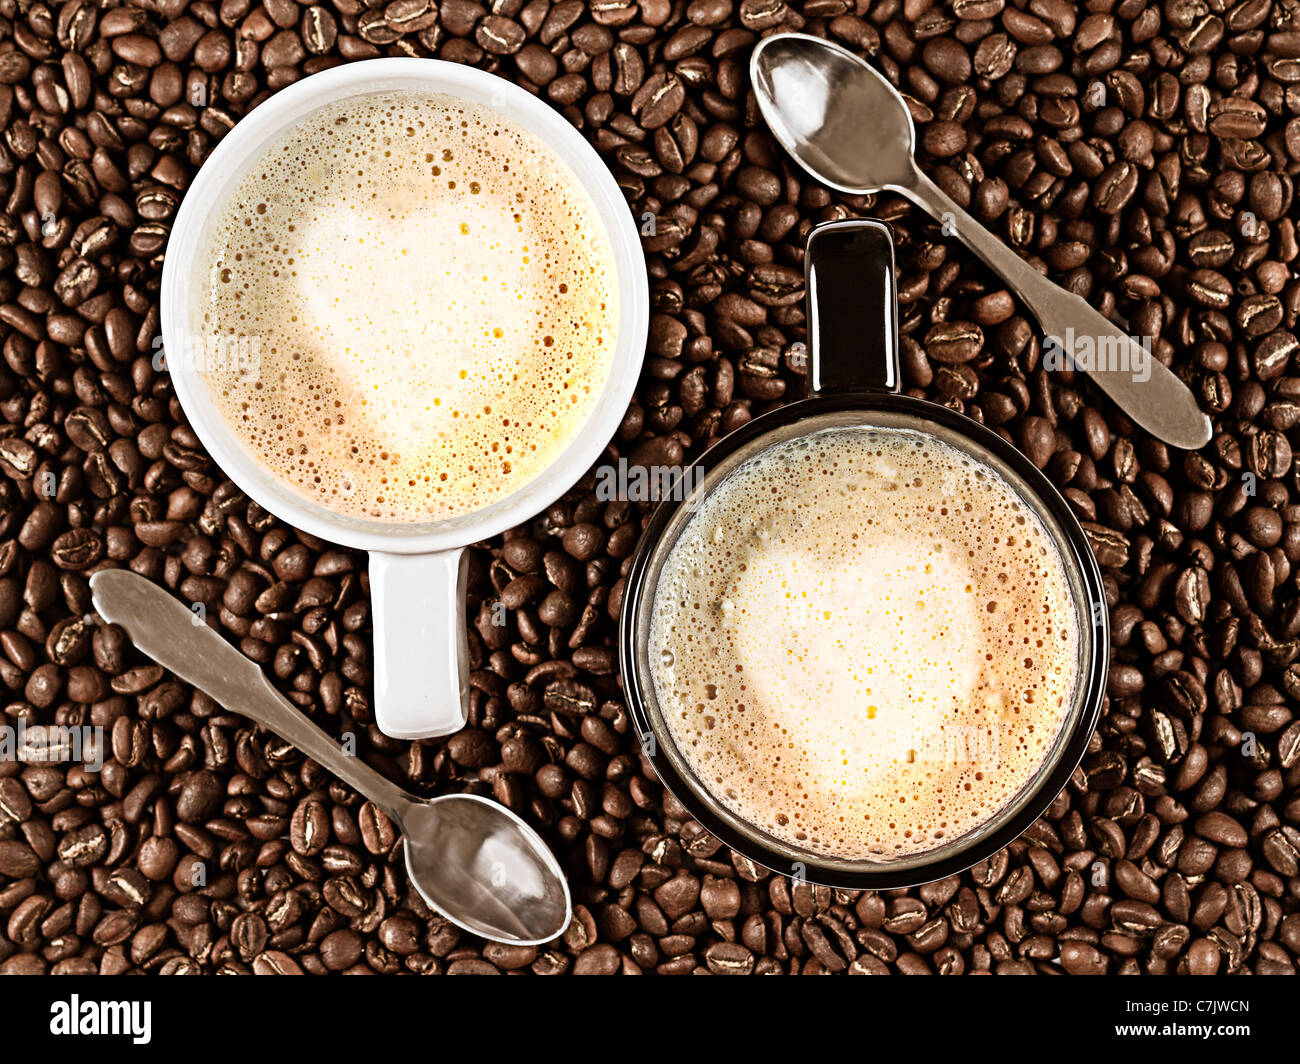 Two cups with Cafee Latte with heart shaped rosetta surrounded by coffee beans and spoons - Stock Image